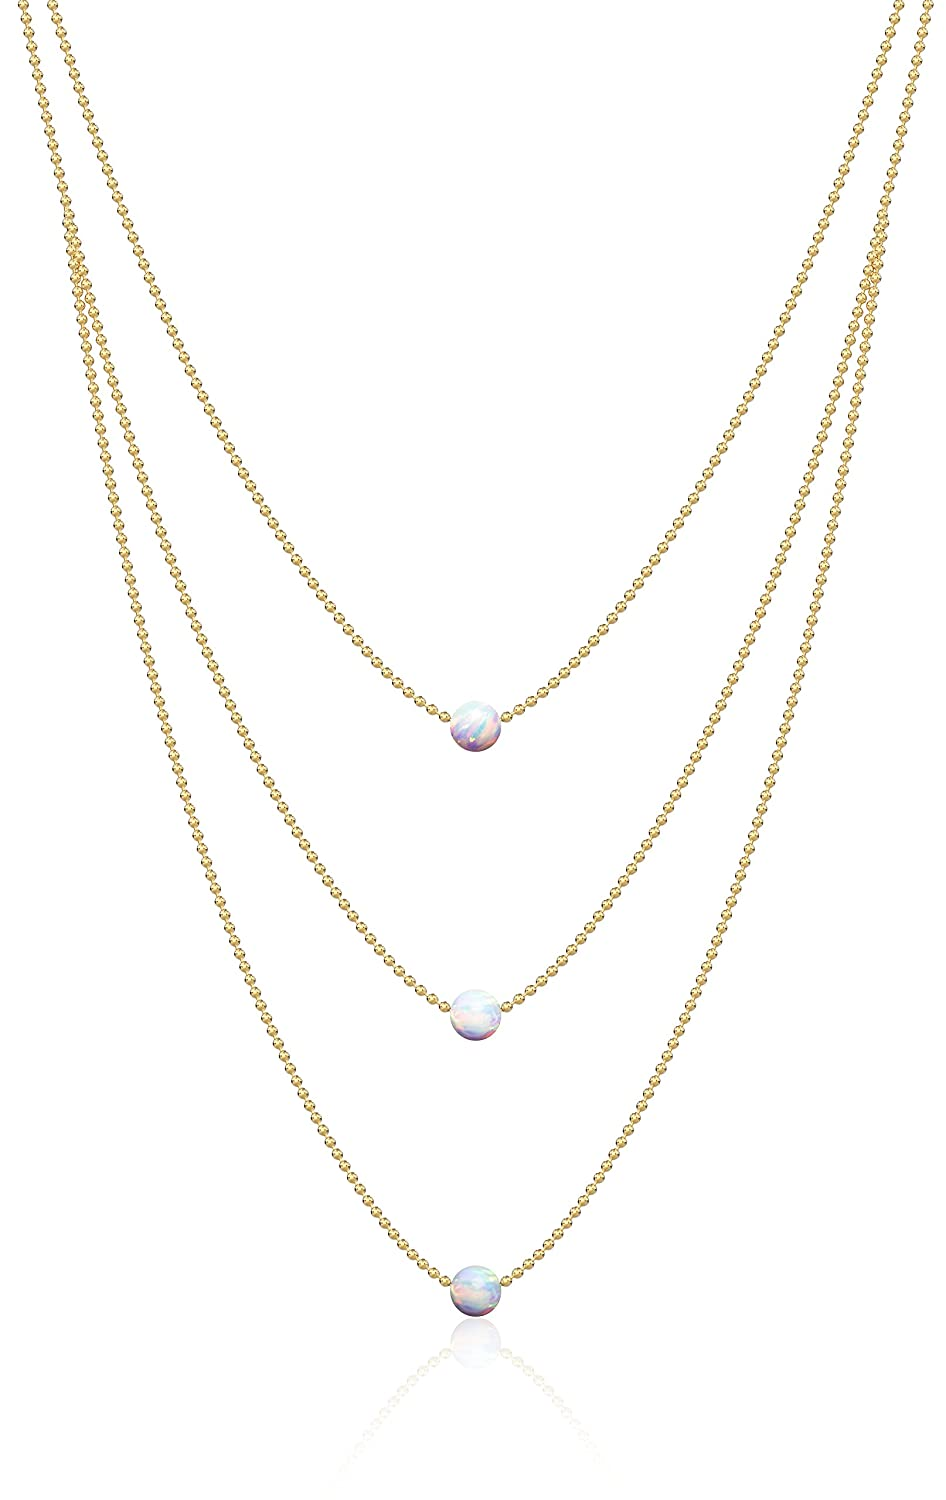 Triple White Opal Necklace  The Inspire 14k gold Ball Chain 3 Tier Pendant Statement Necklace 18 21 24